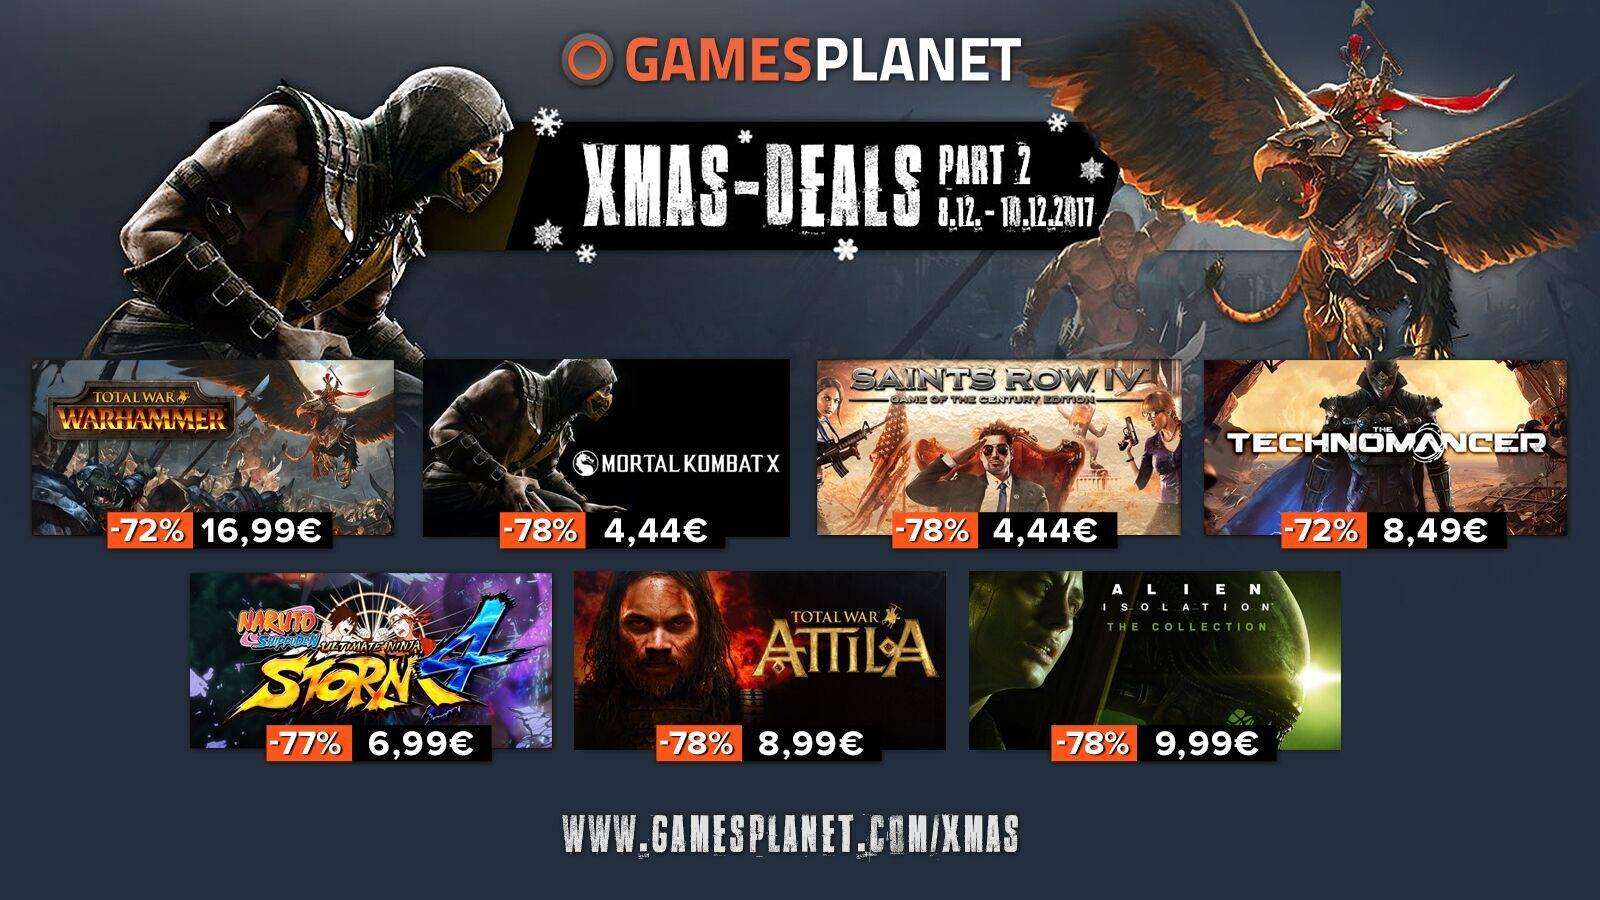 xmas-deals-part-2_EU_partners_preview.jpg